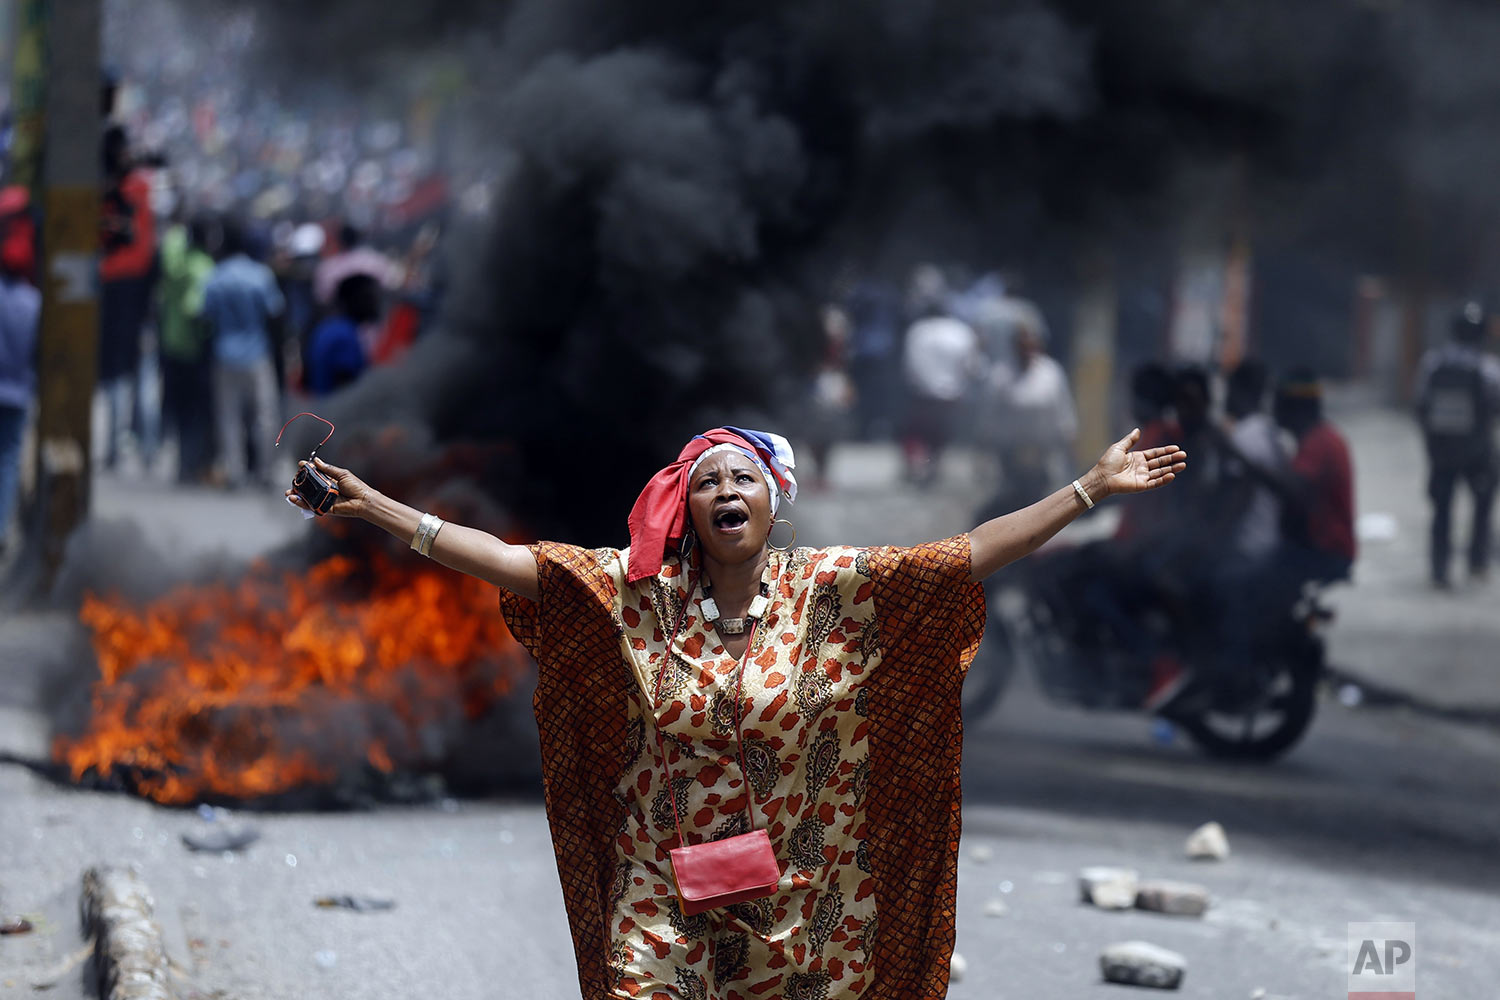 A protester yells anti-government slogans in Port-au-Prince, Haiti, June 9, 2019. Protesters denouncing corruption paralyzed much of the capital as they demanded the removal of President Jovenel Moise. (AP Photo/Dieu Nalio Chery)